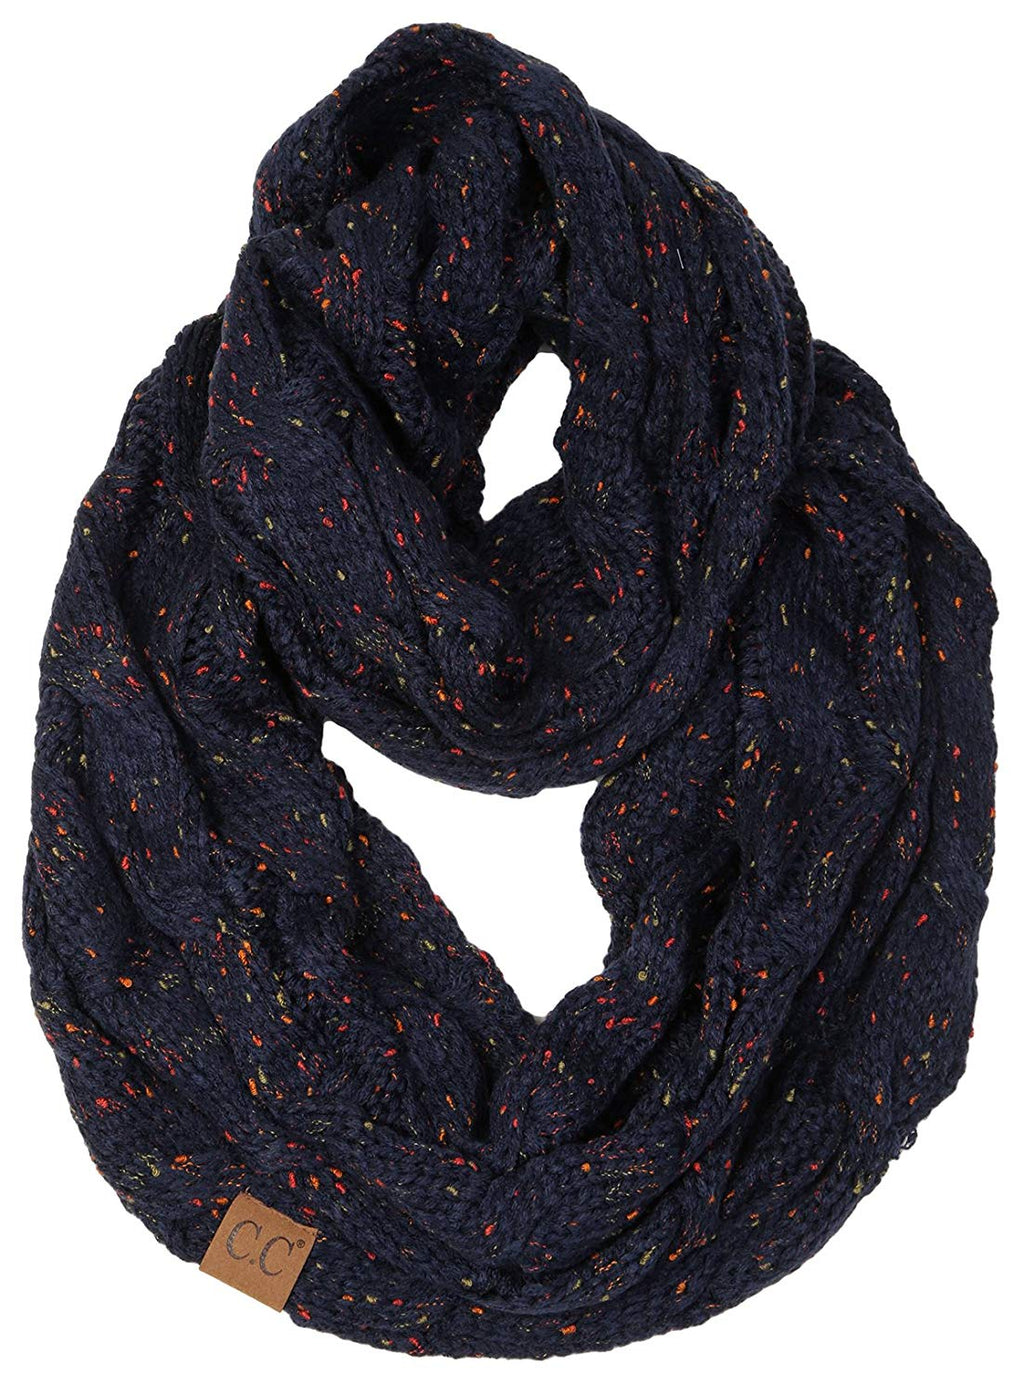 C.C. Cable Knit Infinity Scarf - Confetti